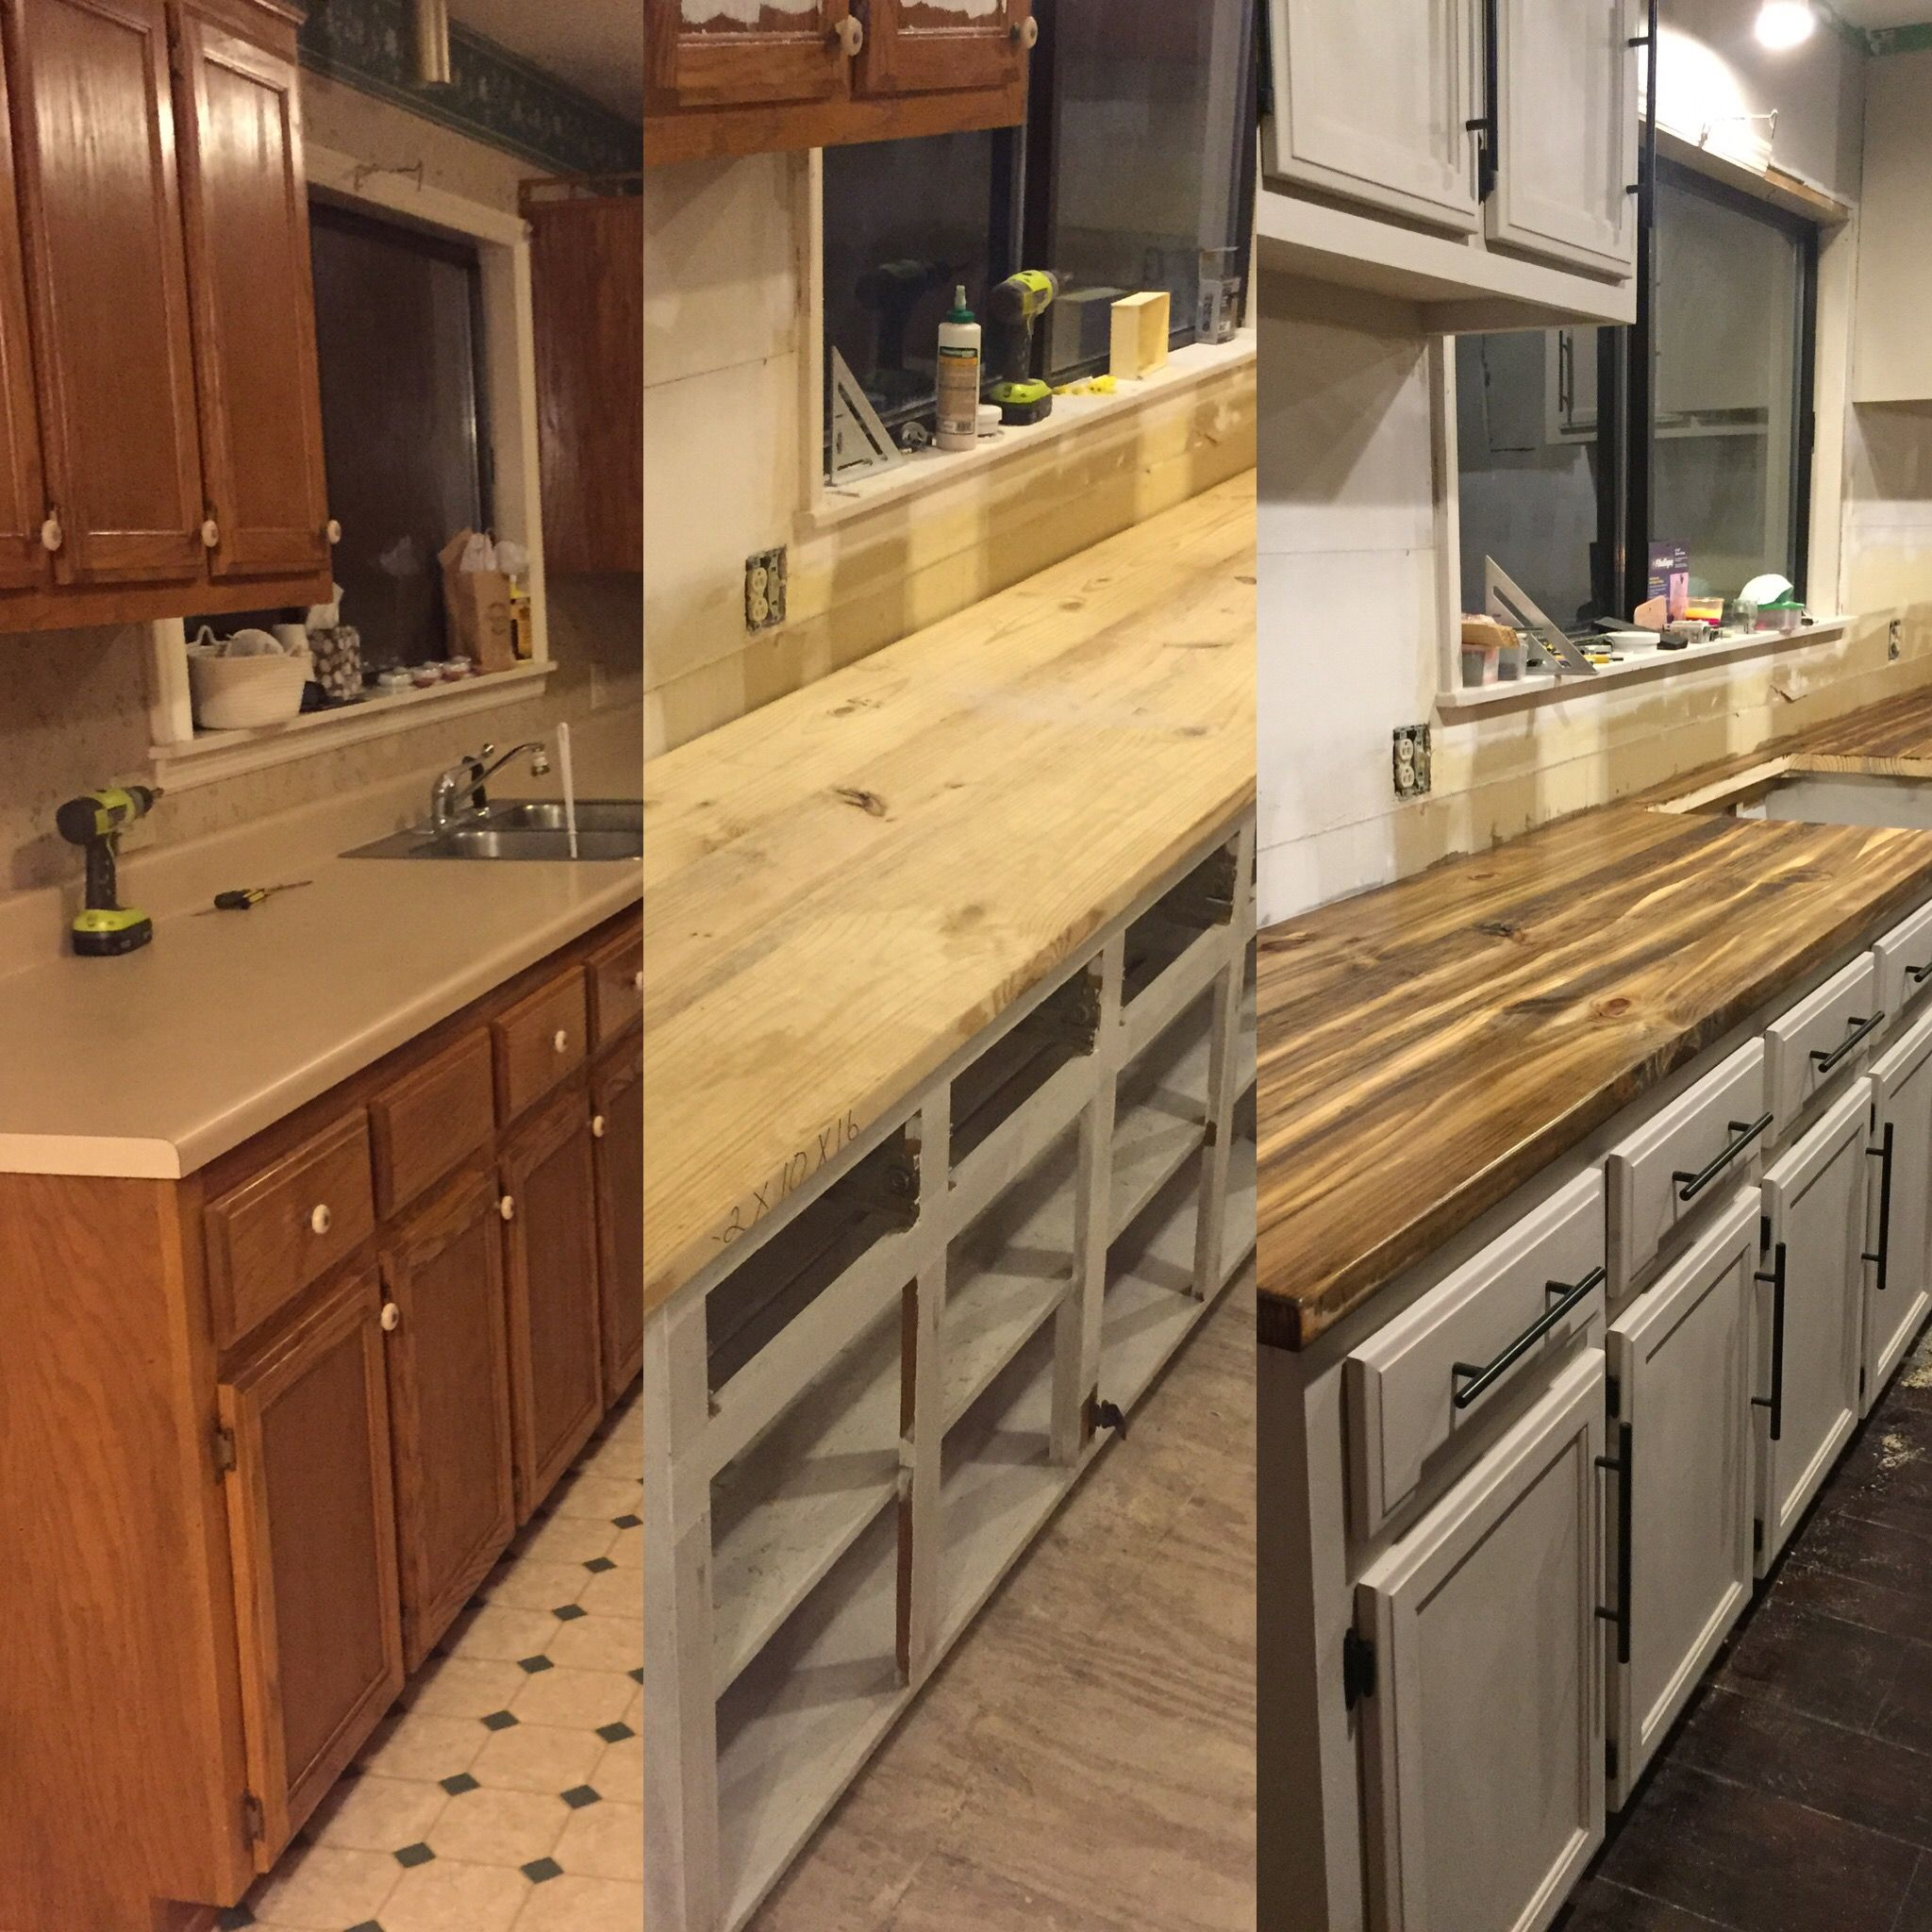 DIY $150 Countertops! FOLLOW ME ON INSTAGRAM